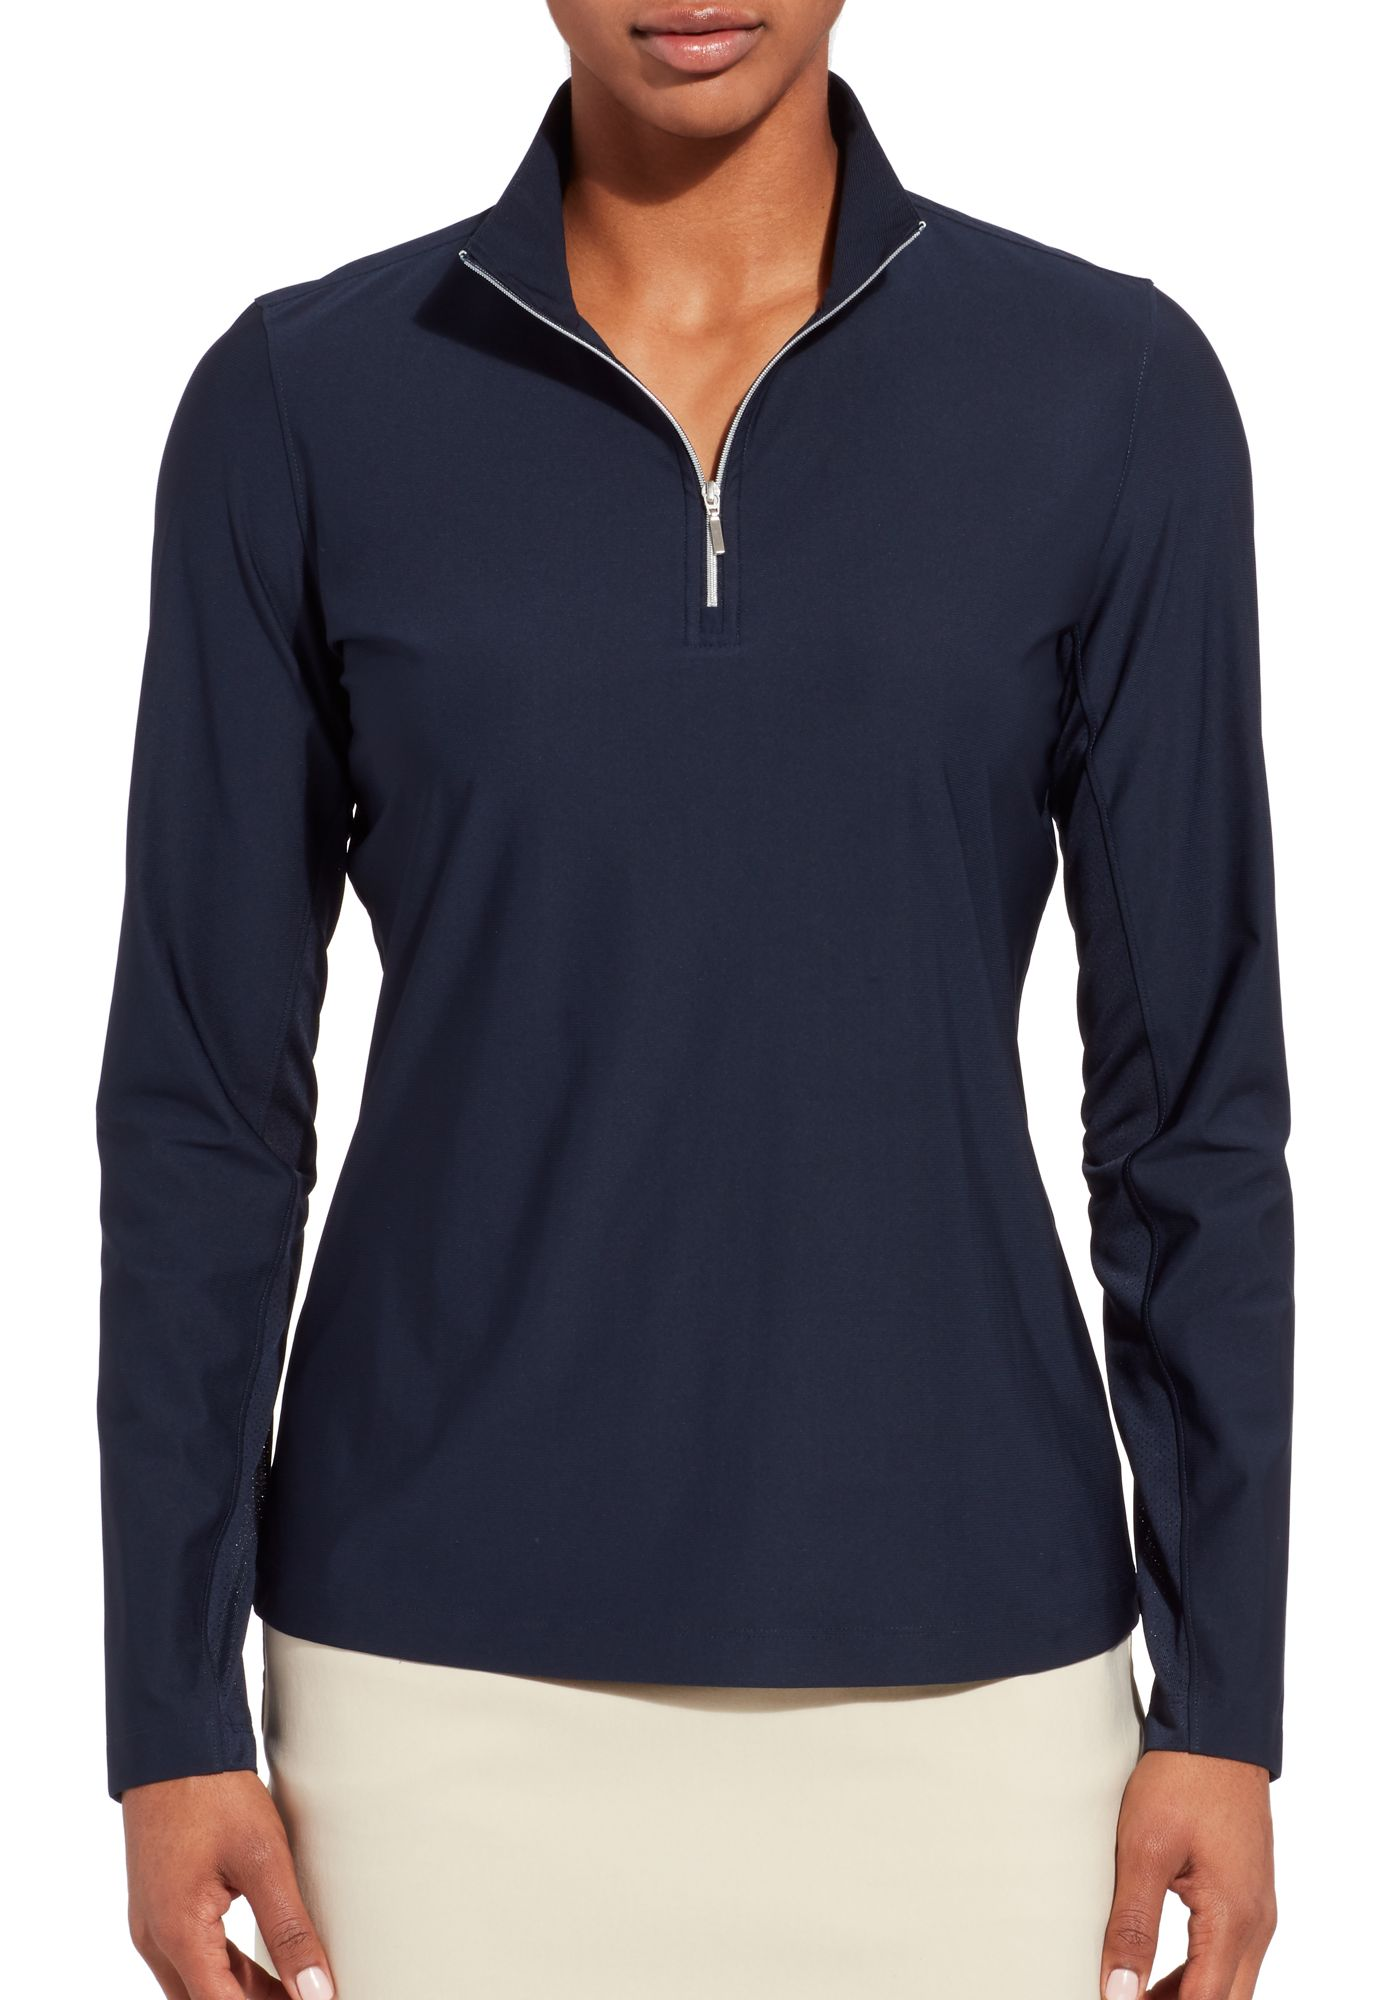 Lady Hagen Women's UV ¼-Zip Golf Pullover